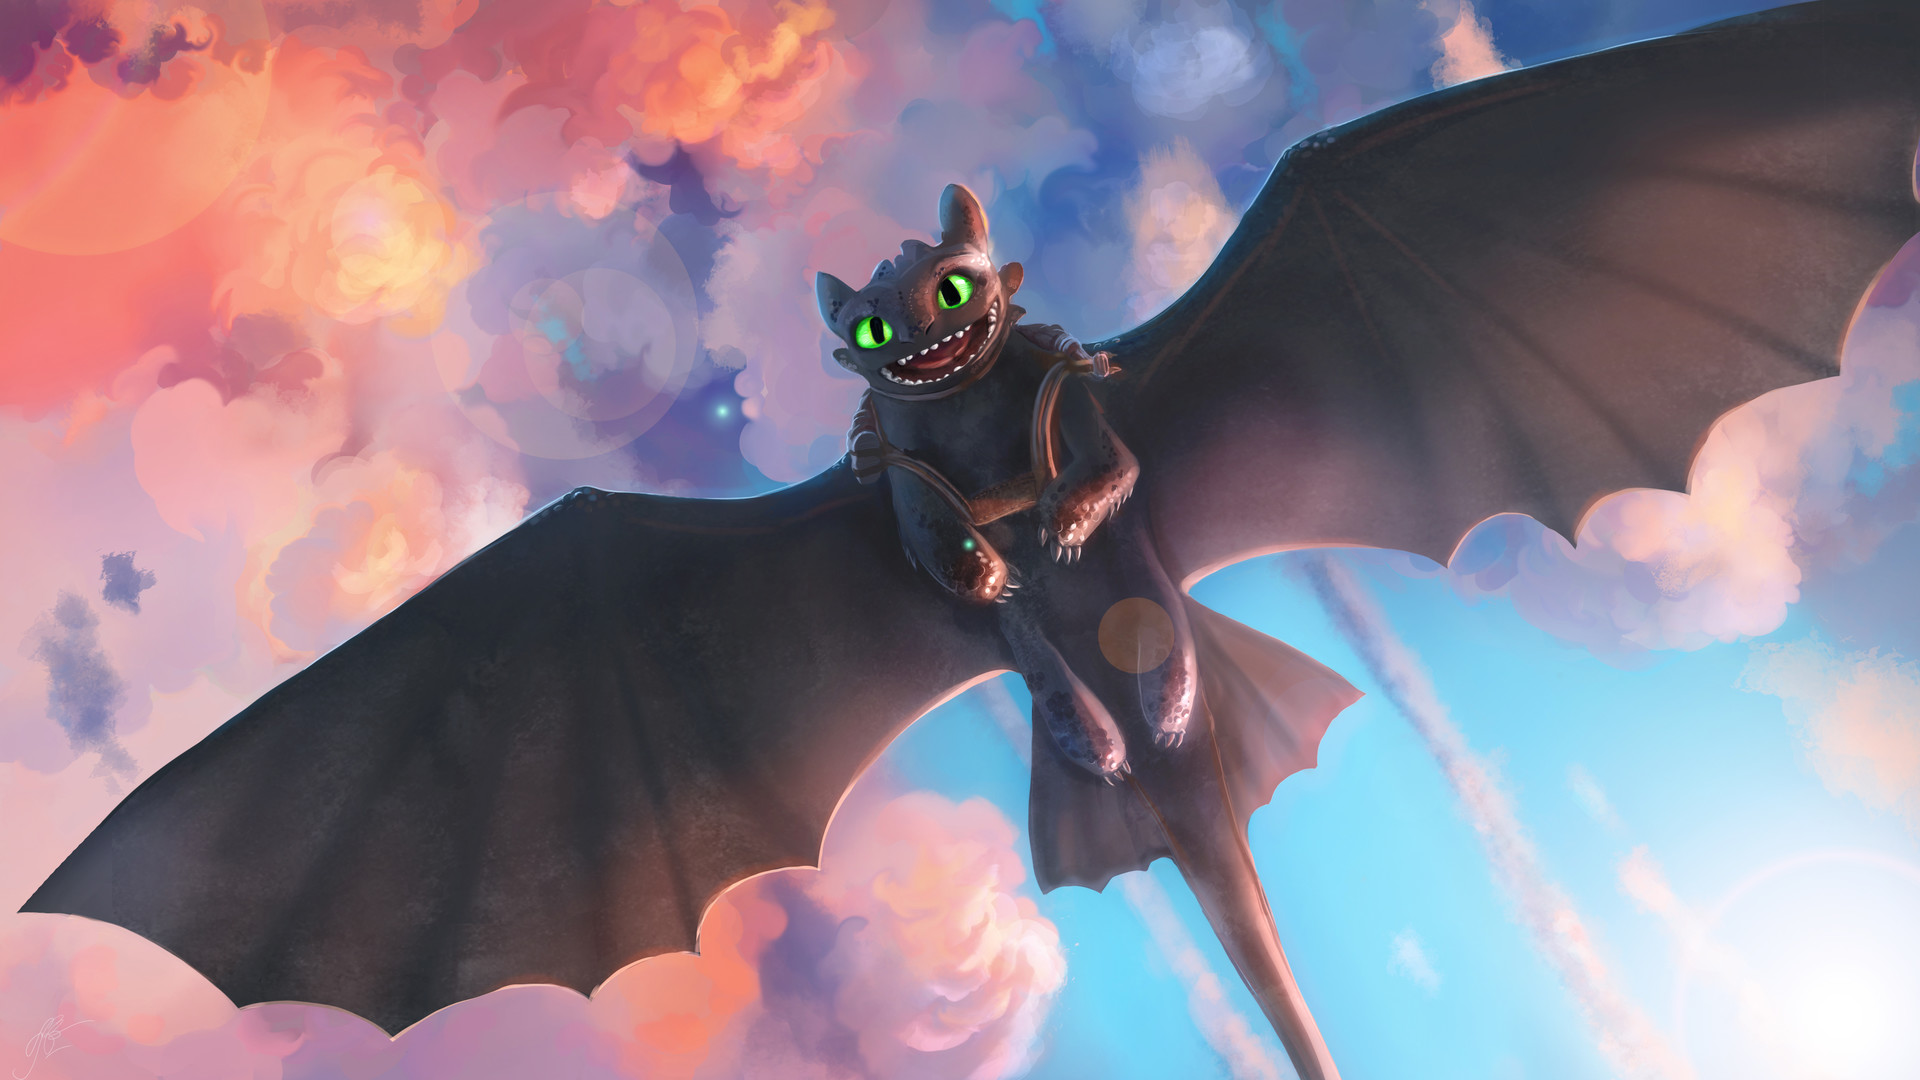 1920x1080 Toothless Artwork Laptop Full Hd 1080p Hd 4k Wallpapers Images Backgrounds Photos And Pictures